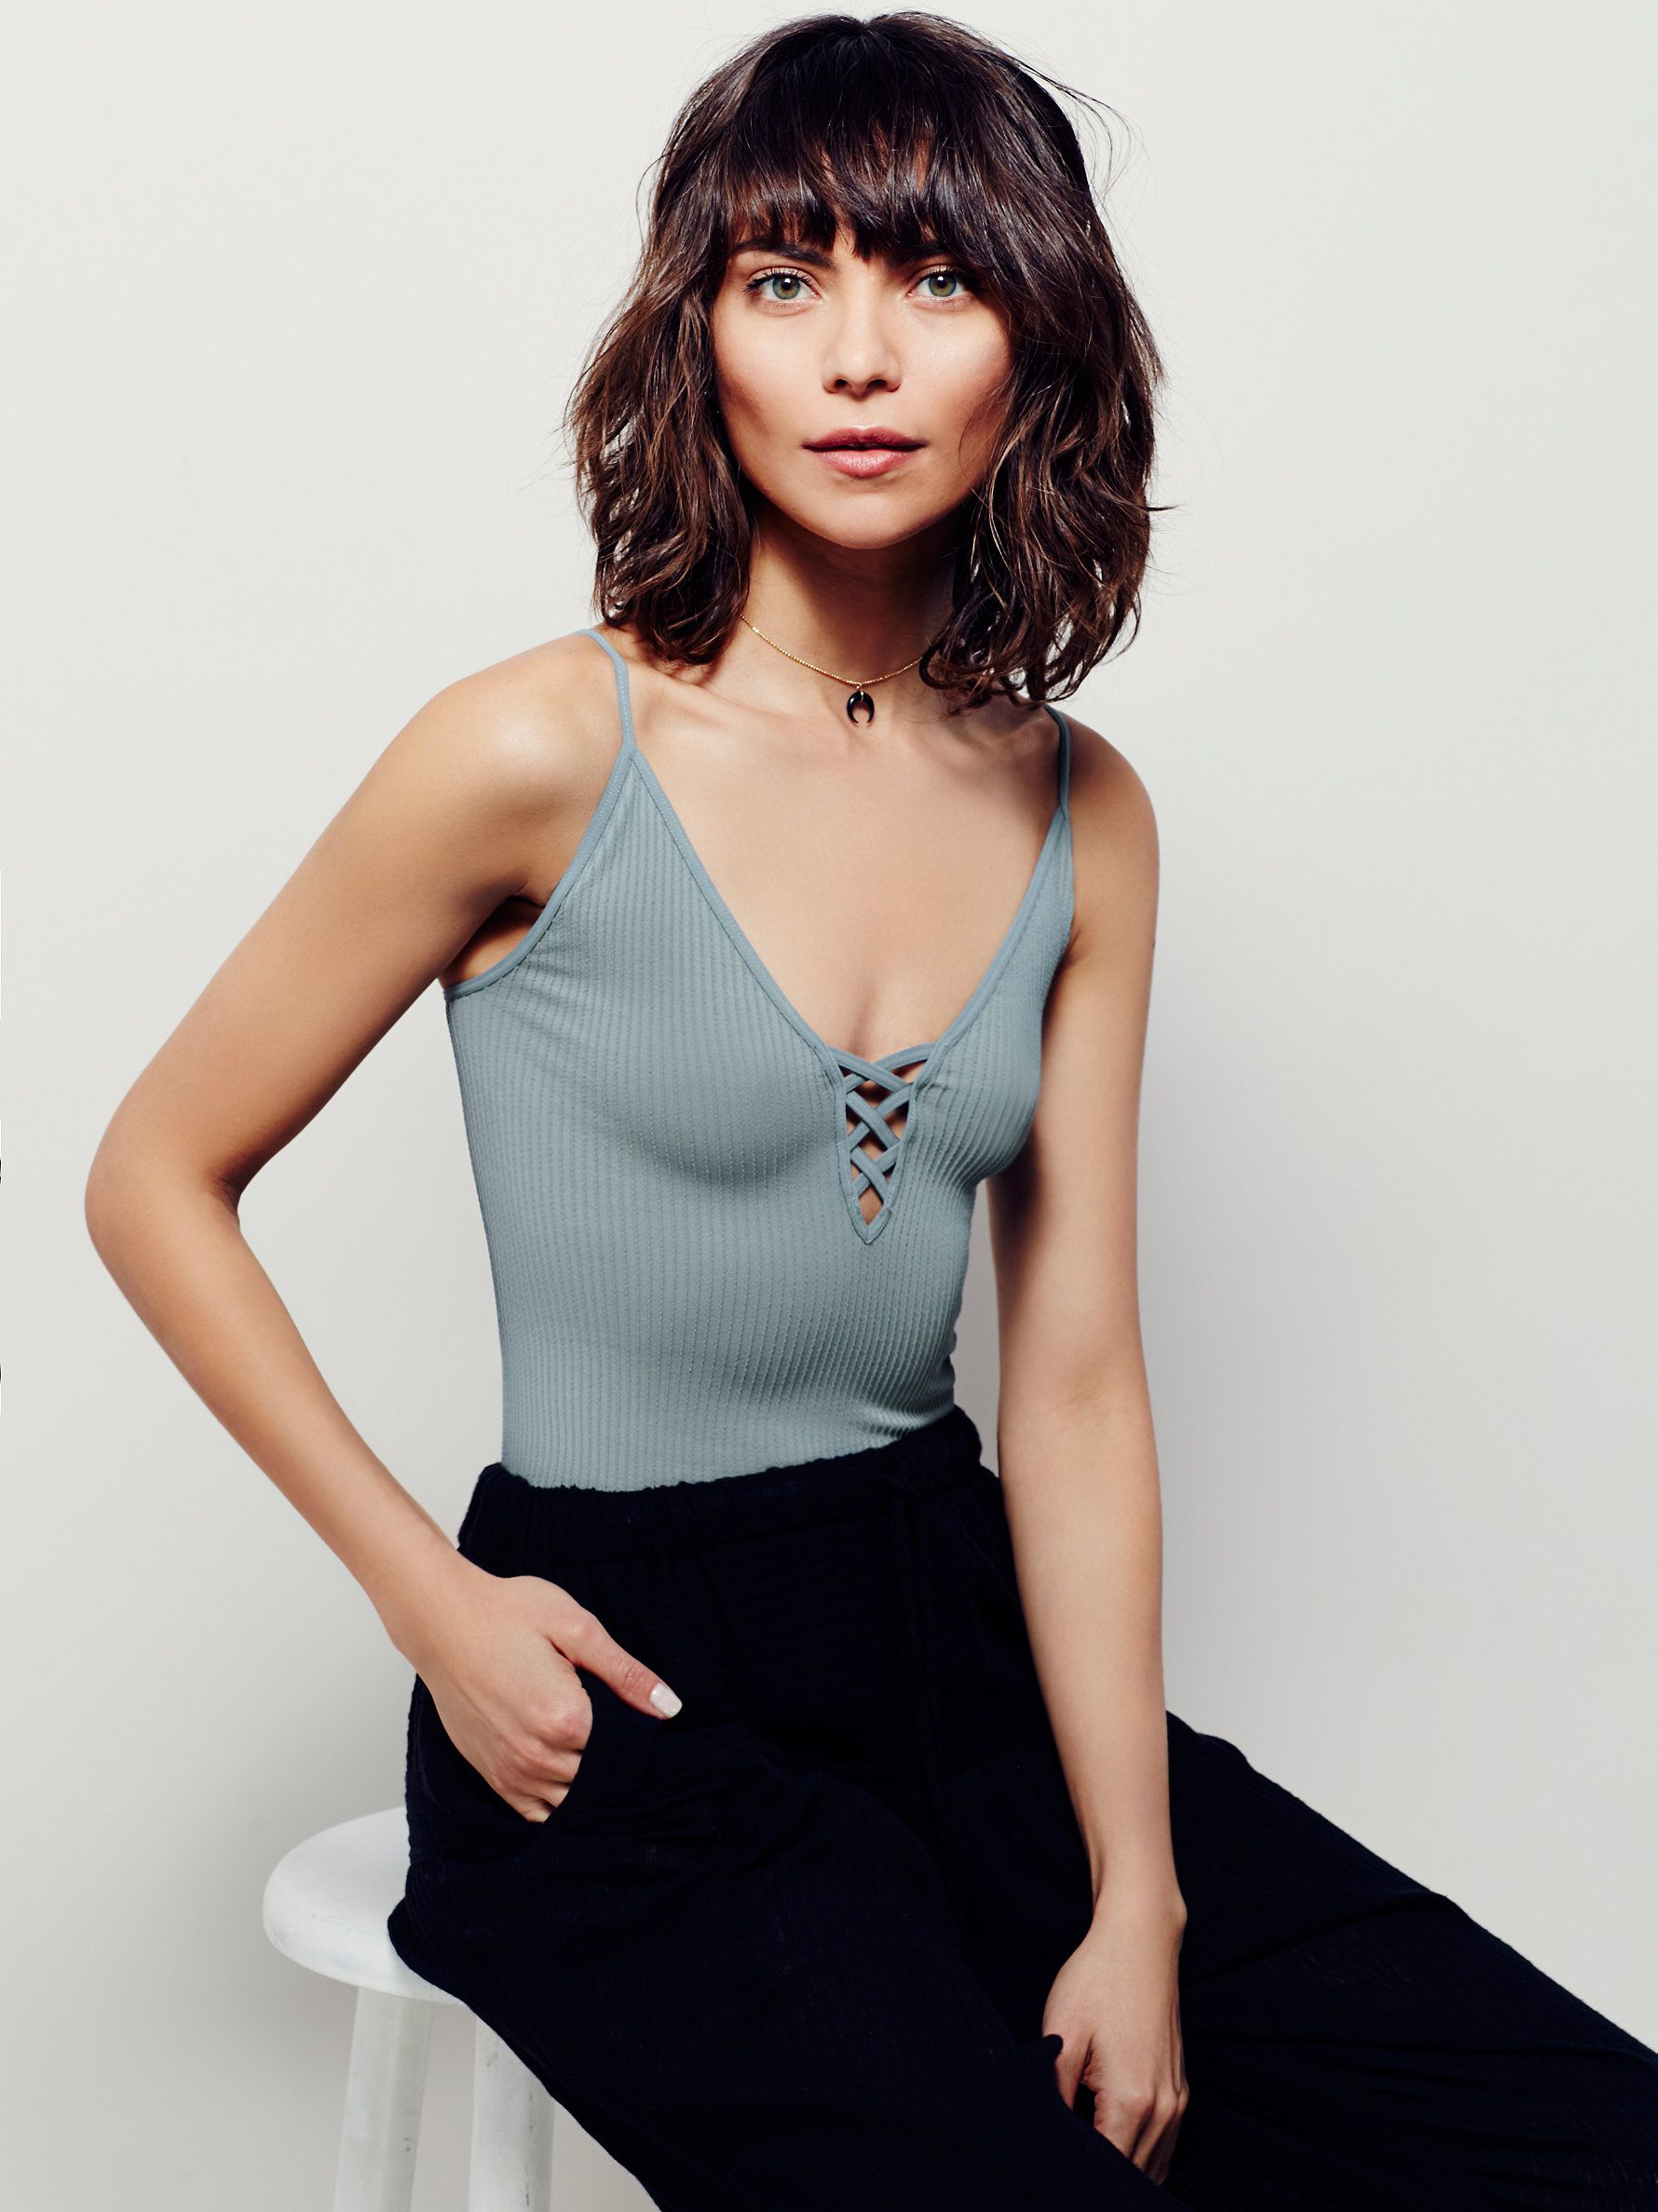 The Crossfire Cami | American made layering cami in a stretchy textured rib fabrication, features a plunging V-neckline with crisscross detailing. Adjustable straps.